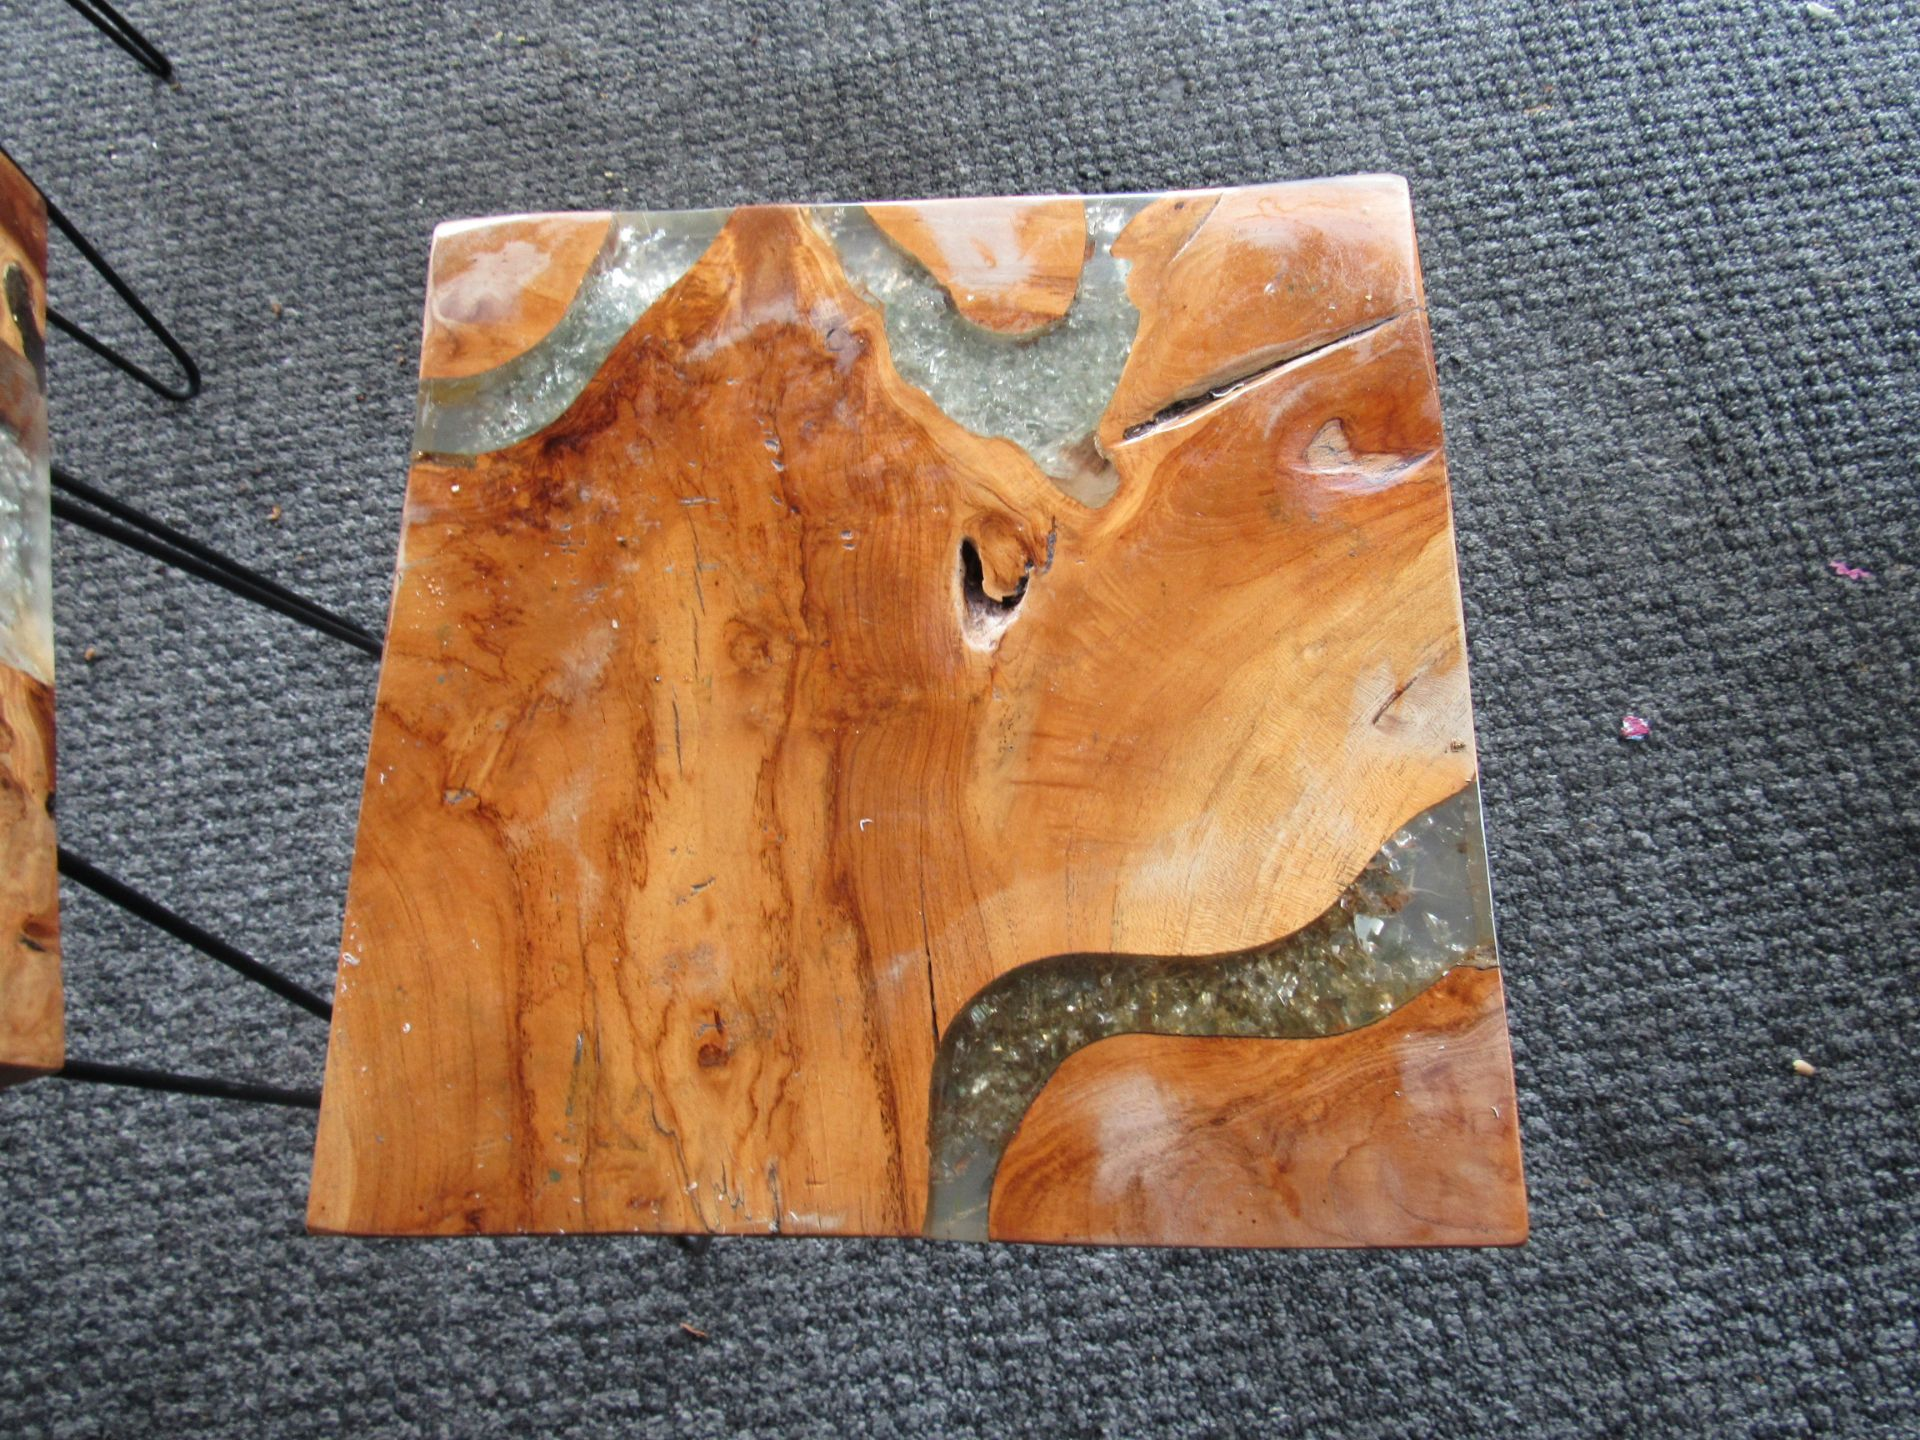 3 Artistic Coffee Tables with Smashed Glass Vein - Image 4 of 4